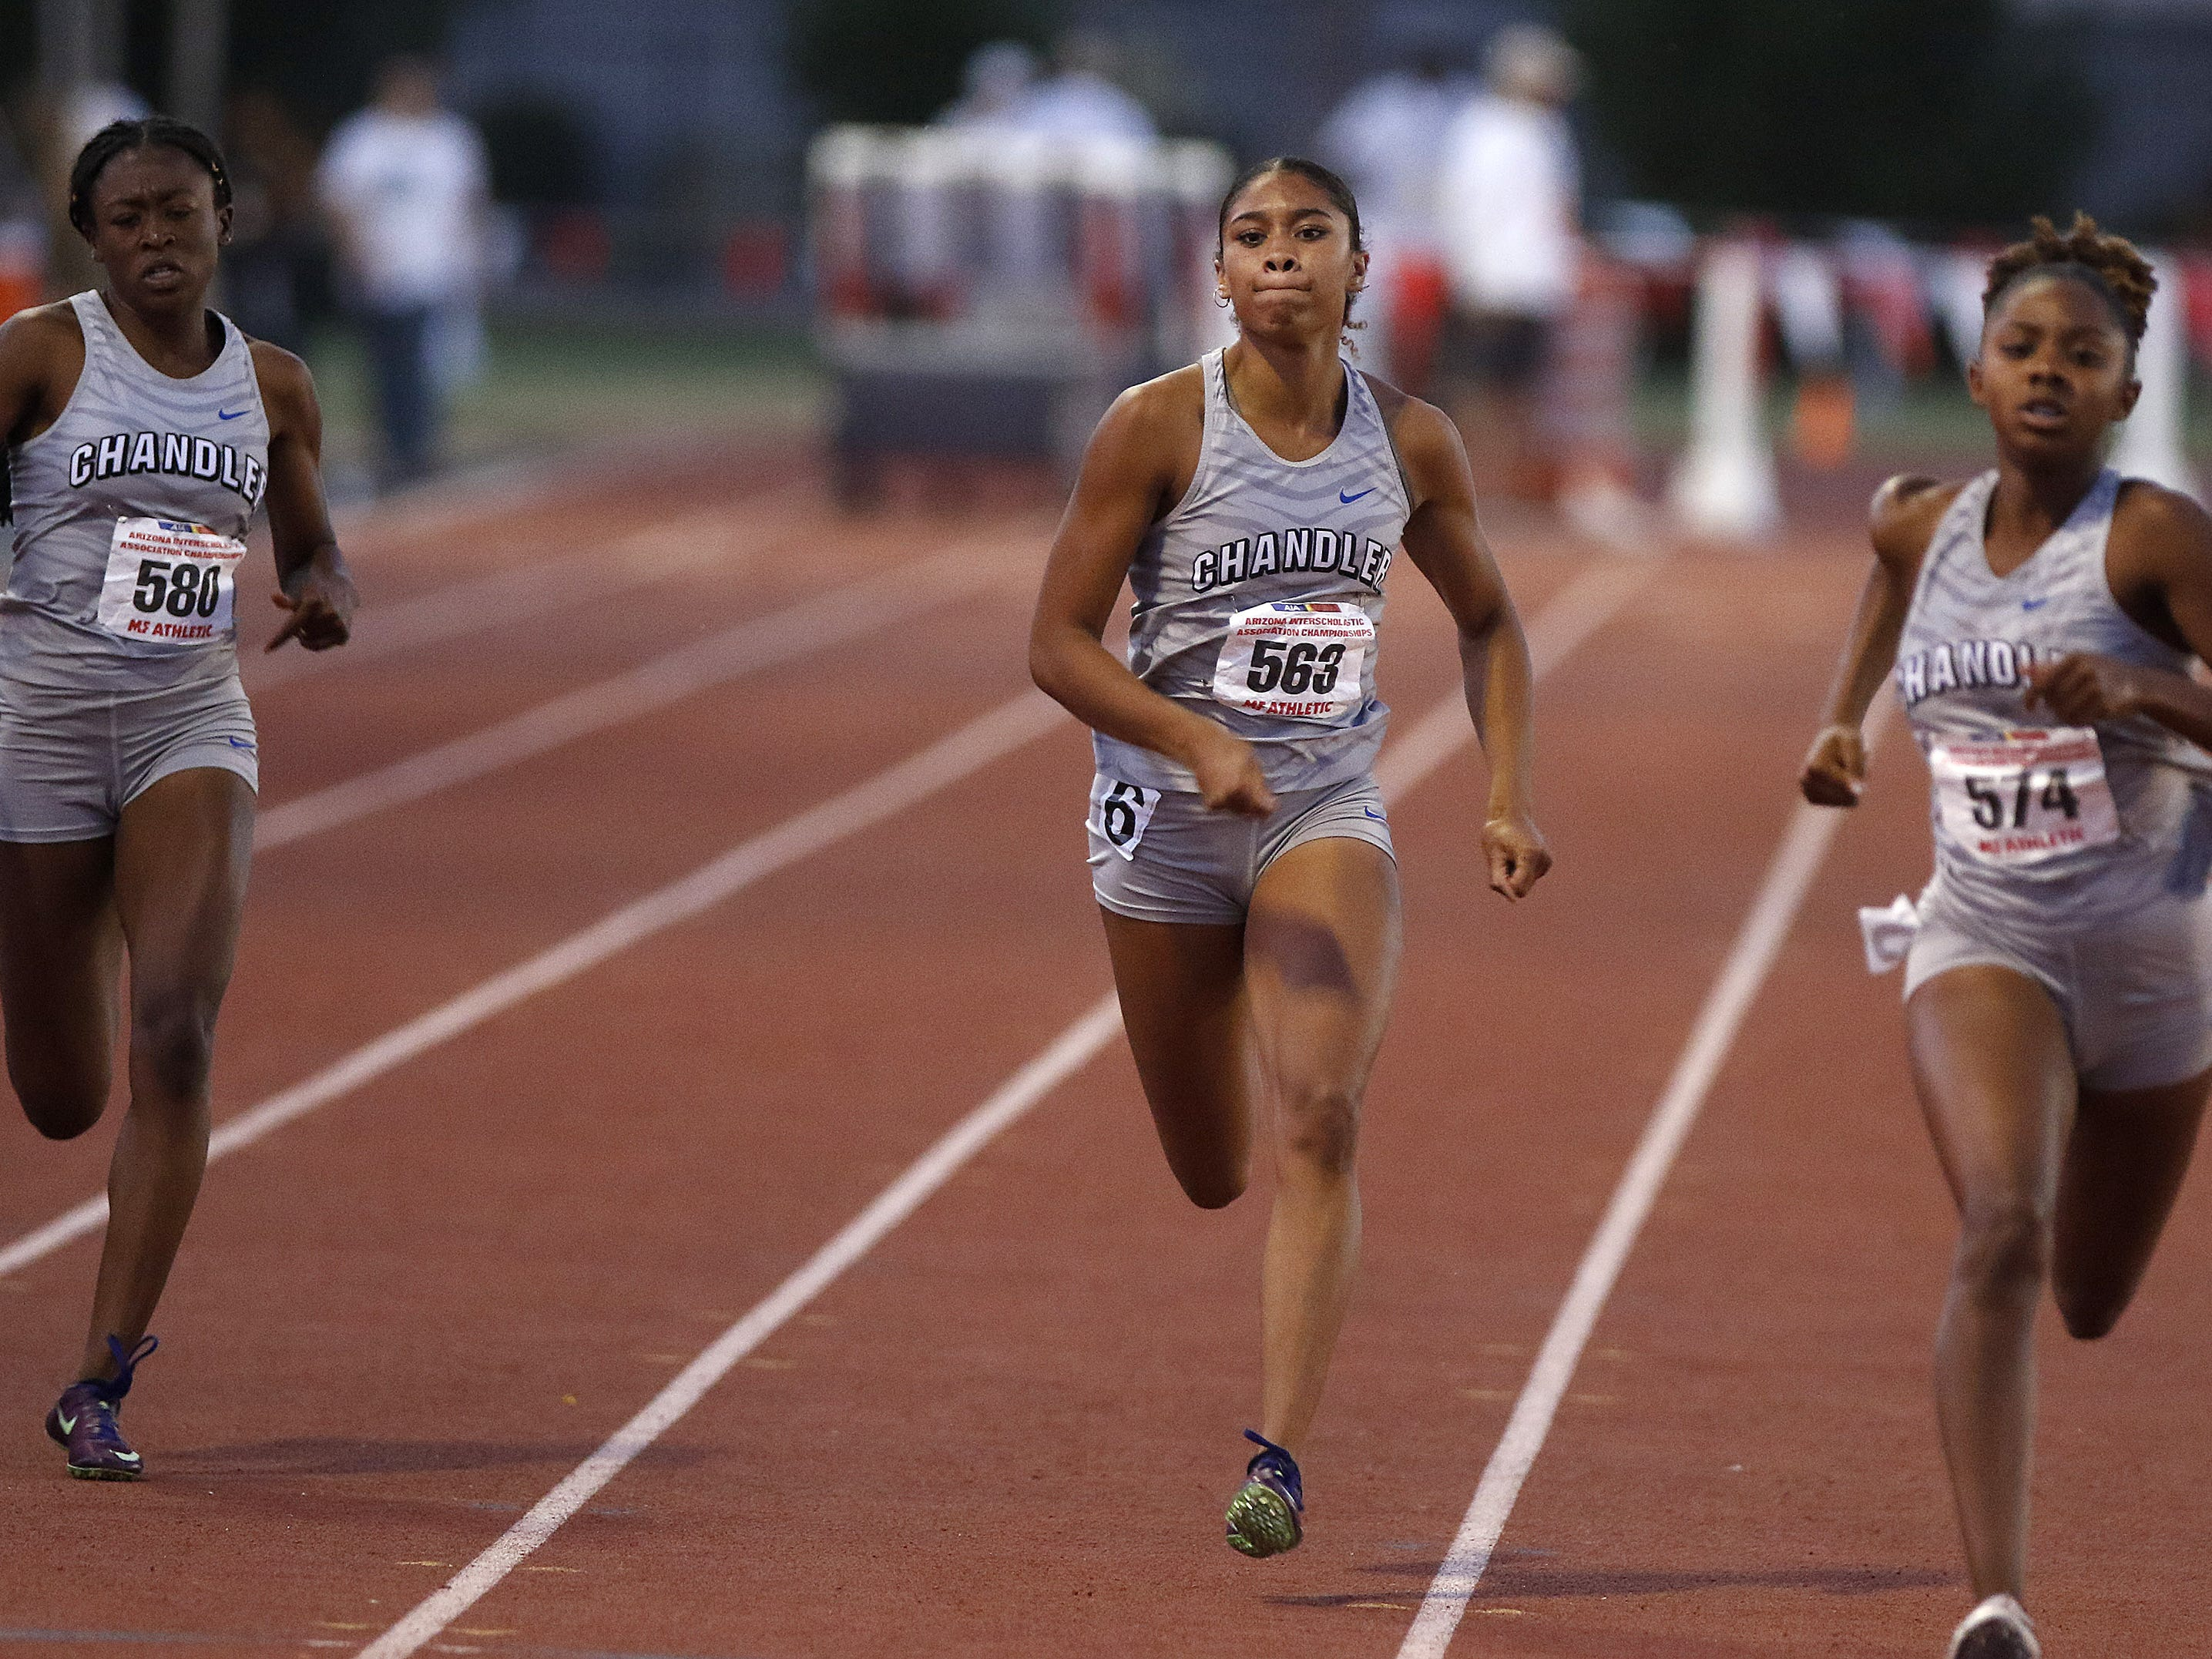 Chandler's Trinity Henderson(left) finishes 4th while teammate Jocelyn Johnson (middle) finishes 2nd behind first place finisher Kelise Davis (right) during the 400 meter run during the 2019 Arizona State Track and Field Championship at Mesa Community College in Mesa, Arizona, May 04, 2019.